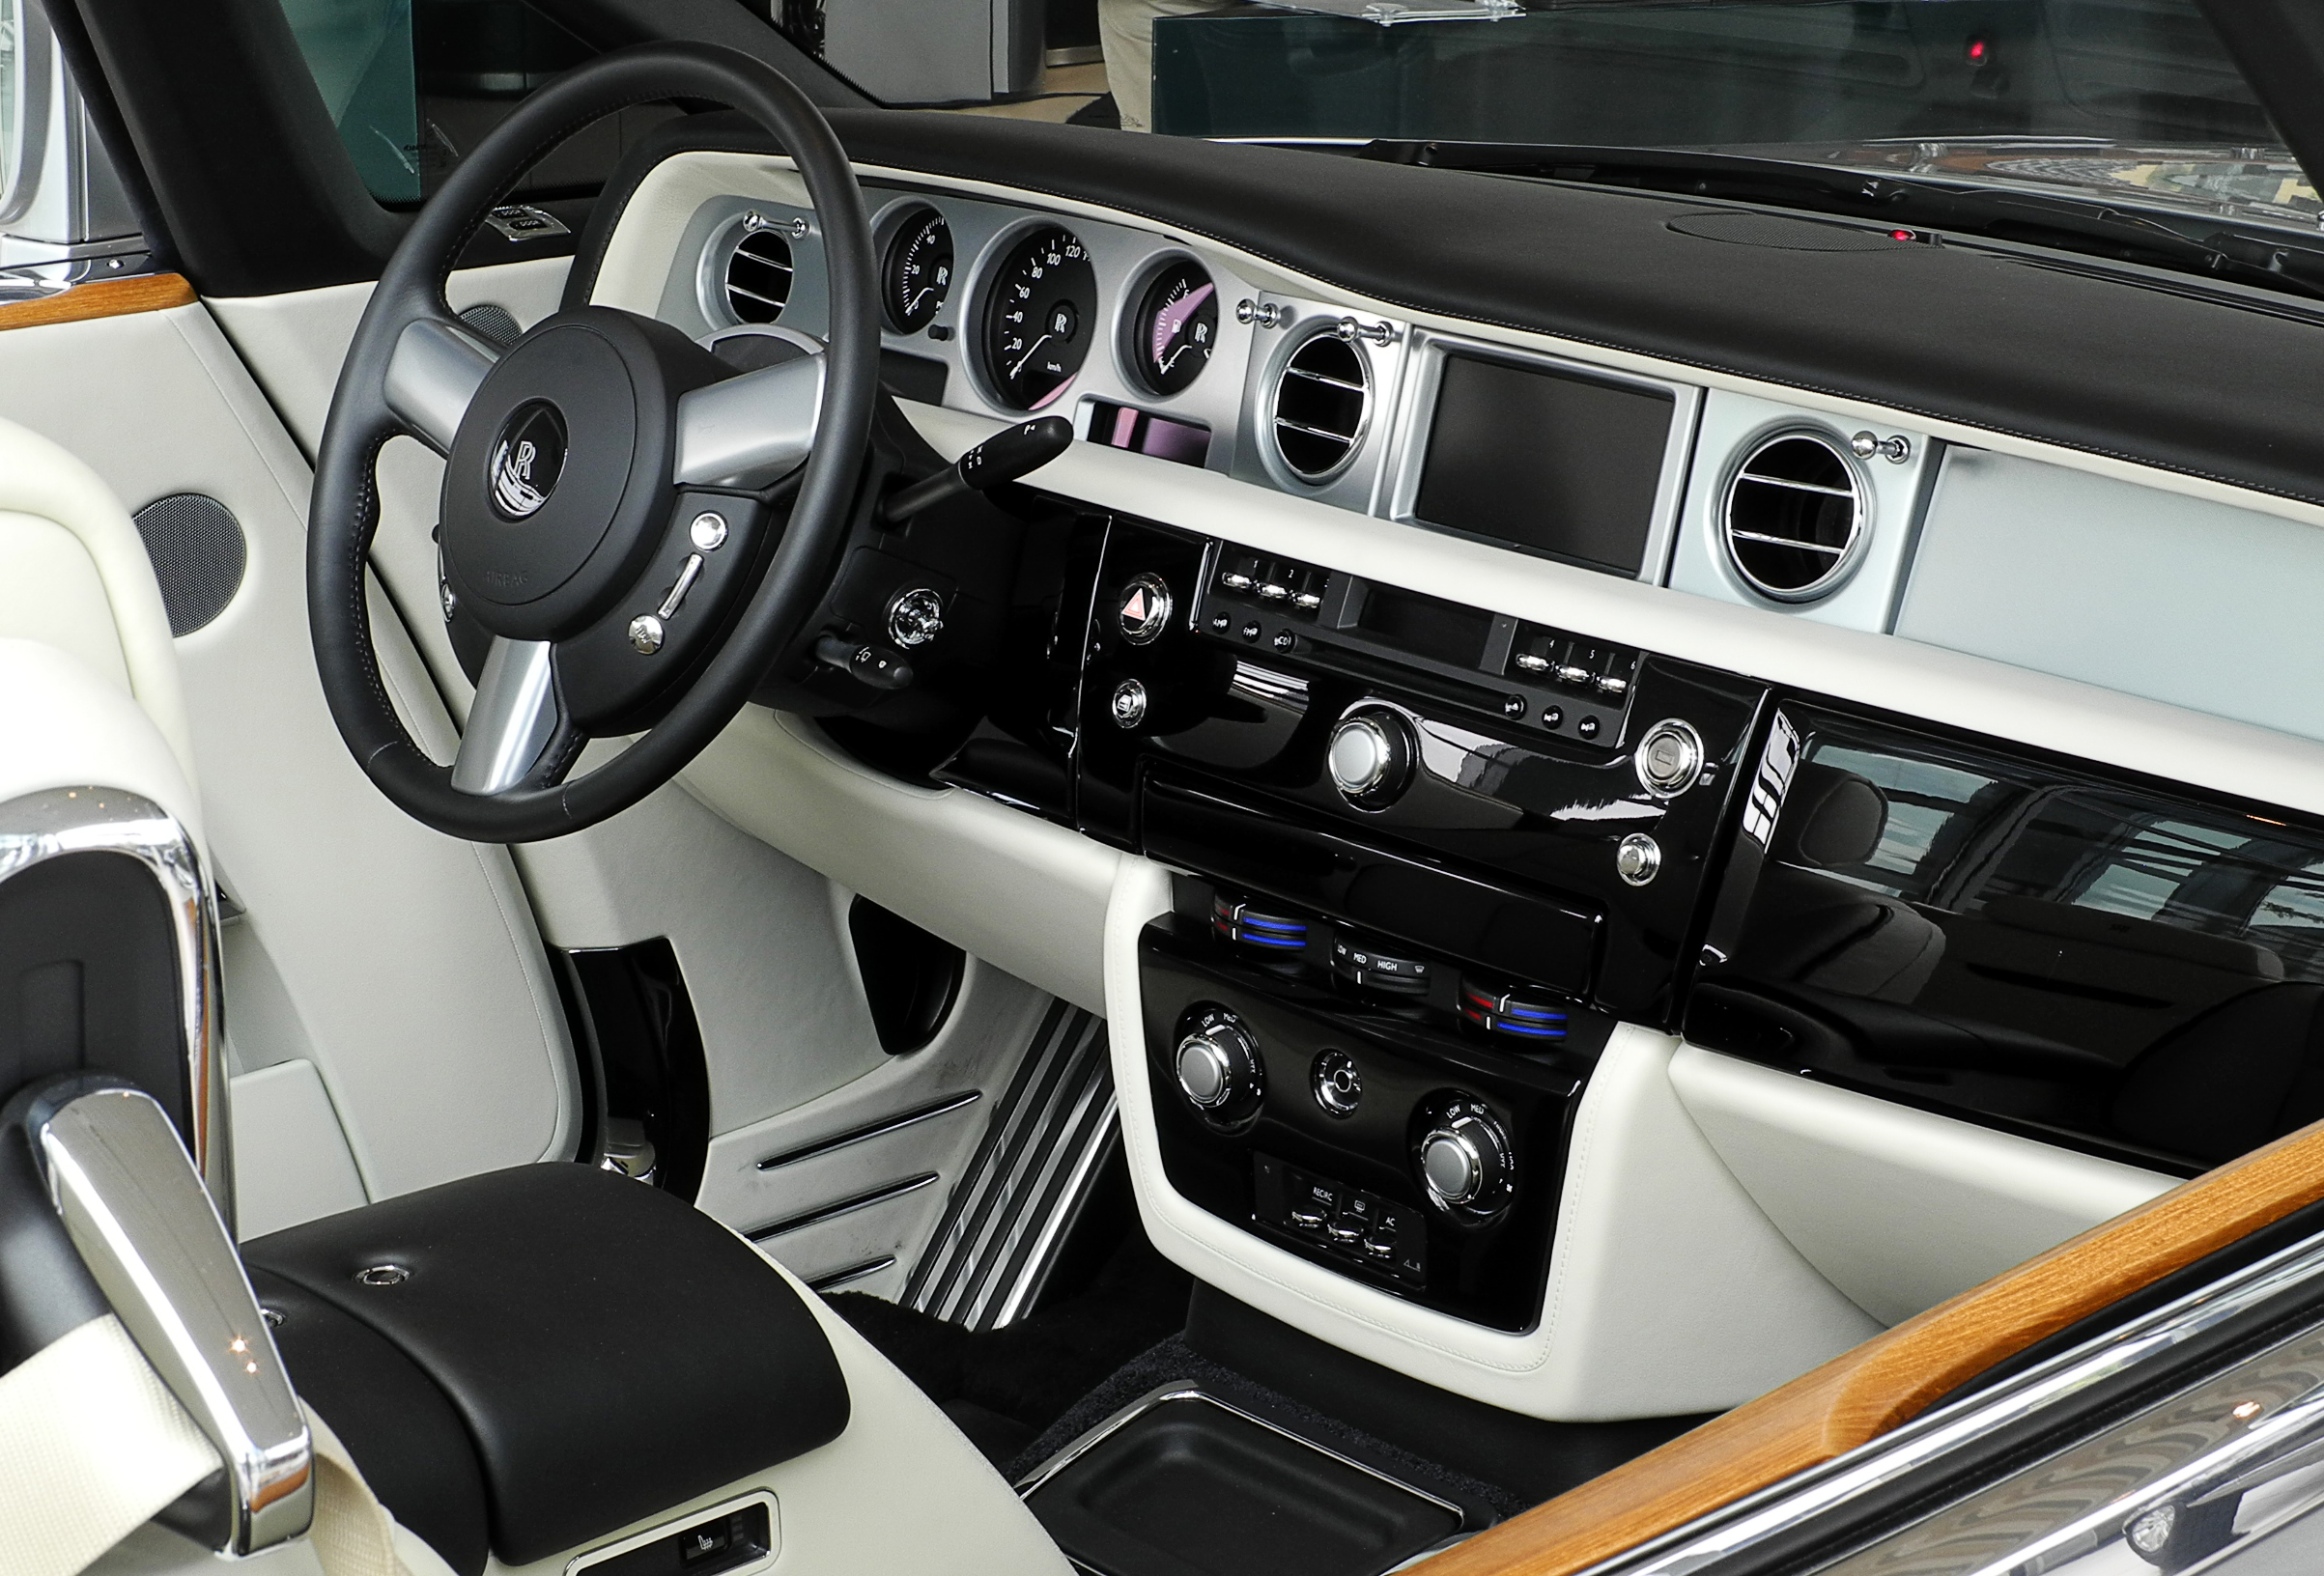 2011 Rolls royce Phantom Coupe #20